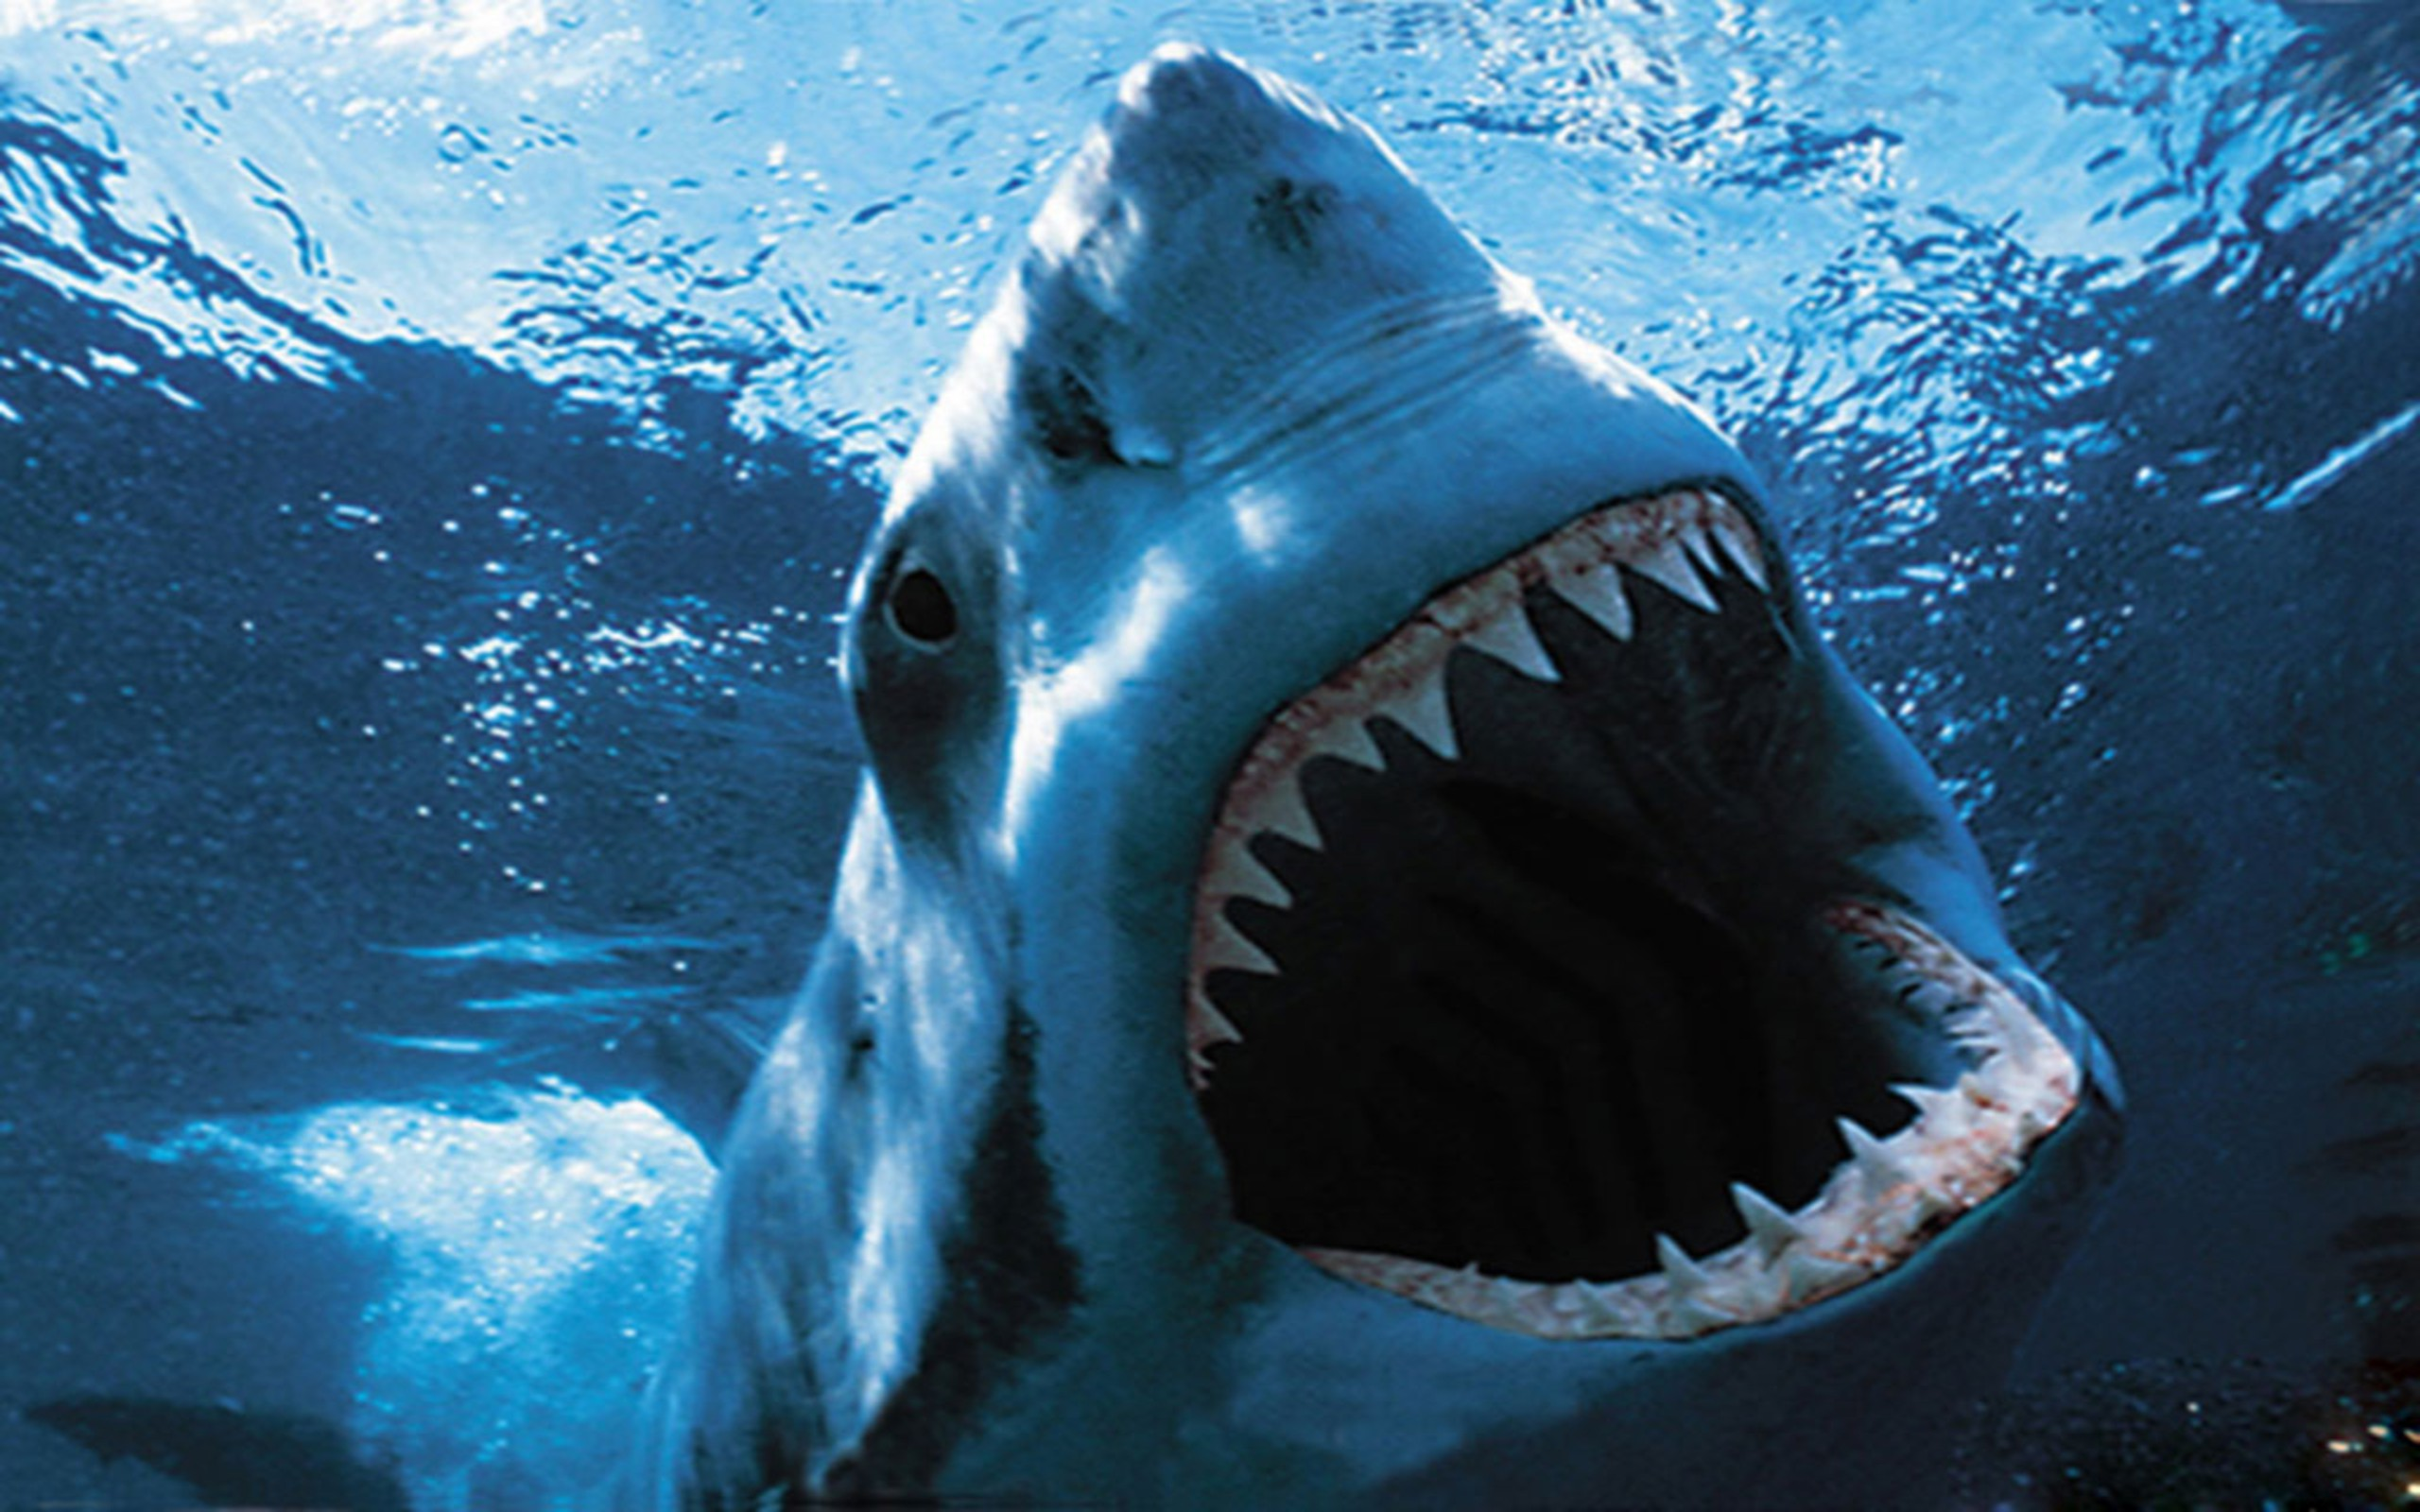 DOWNLOAD: Shark Wallpaper free picture 2560 x 1600